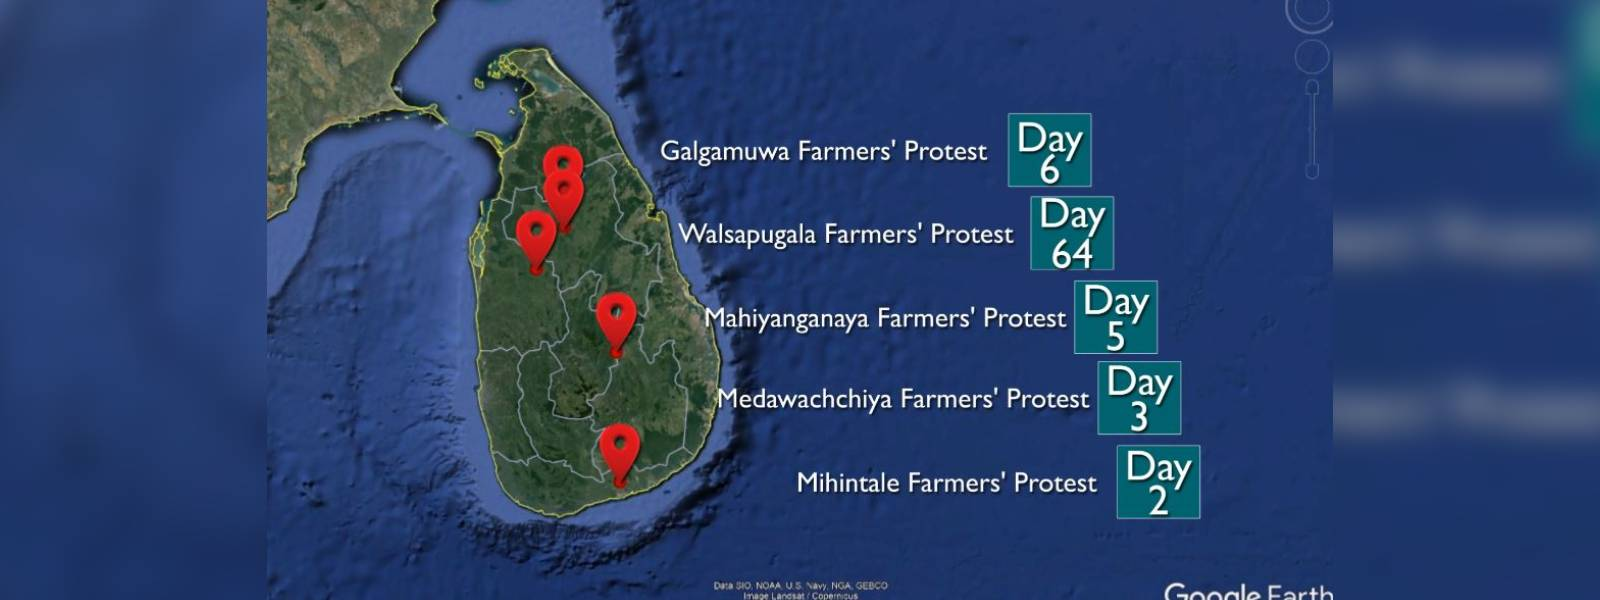 Protests to protect forests and wildlife continue